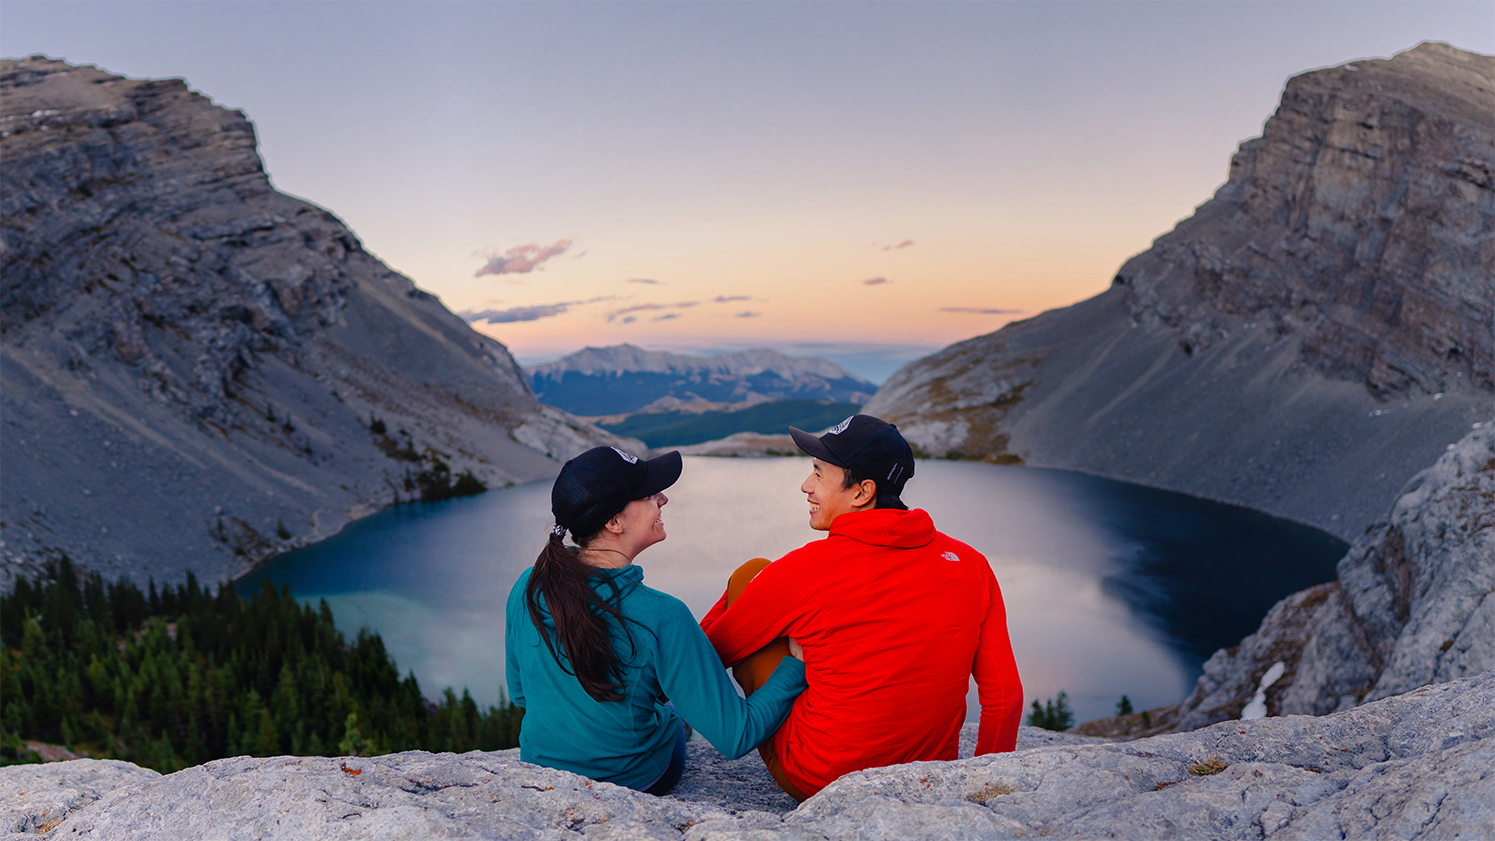 Man in red fleece and woman with ponytail in green fleece sit in front of carnarvon lake in kananaskis country at sunset